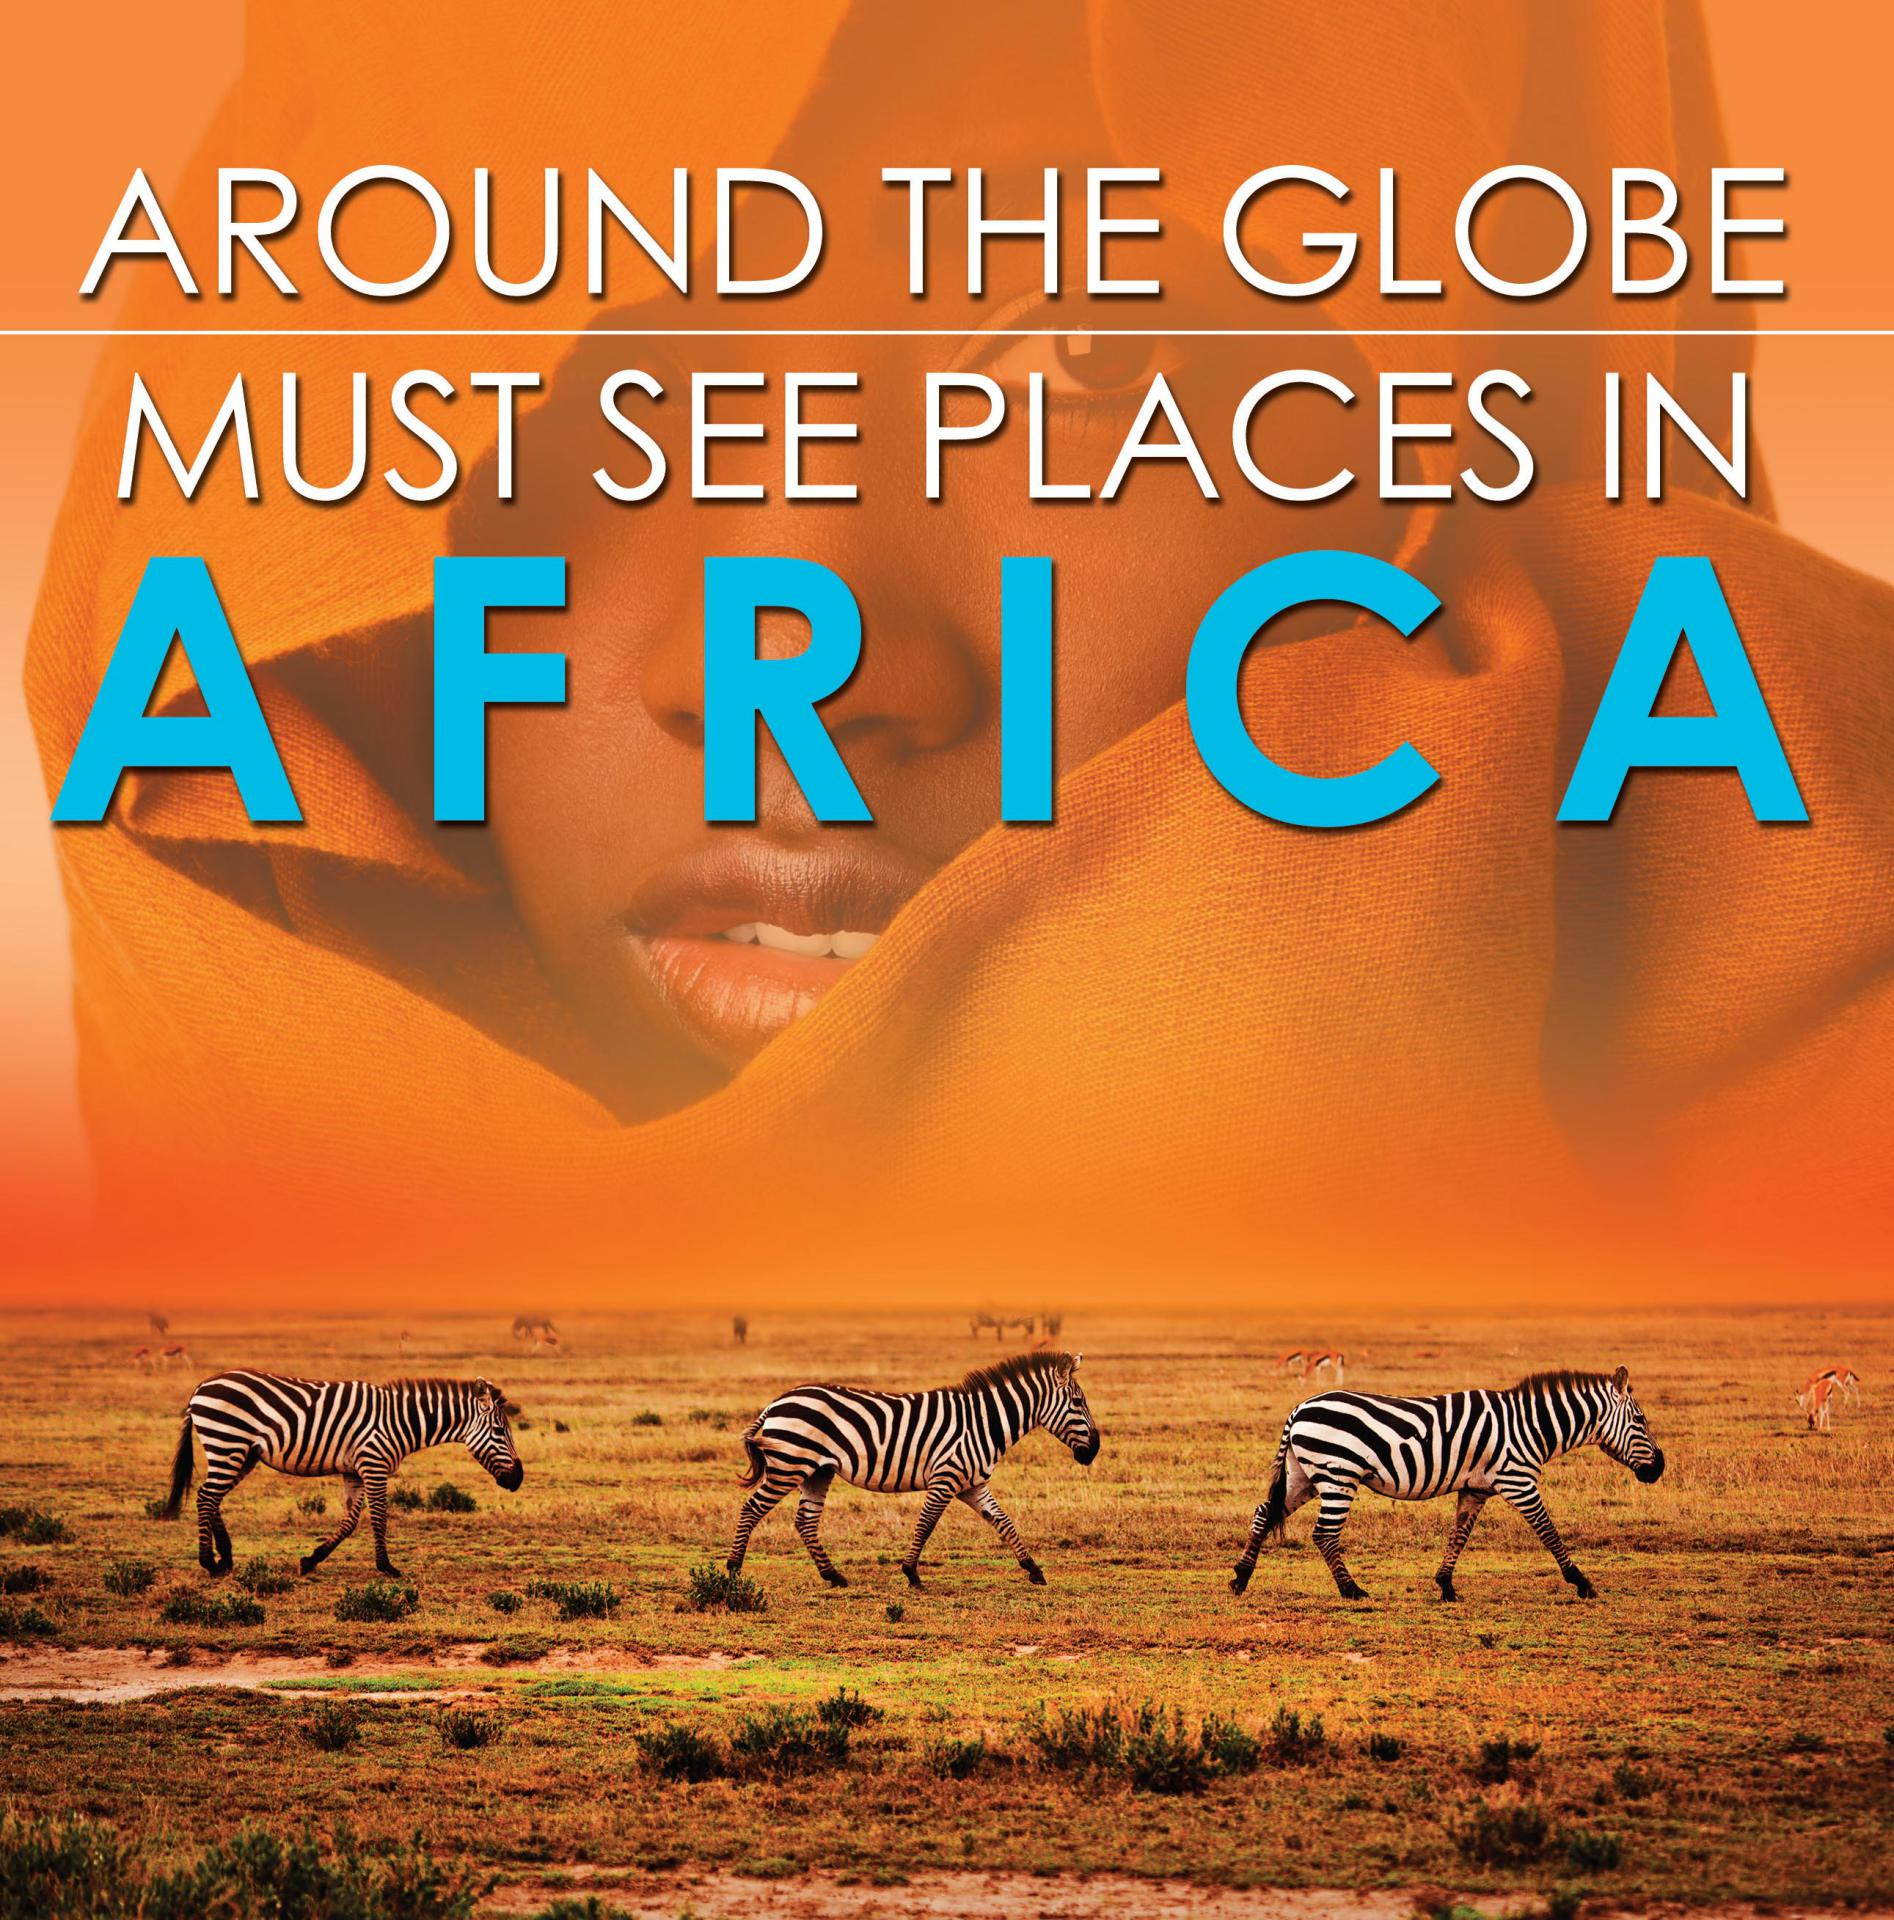 Around The Globe - Must See Places in Africa African Travel Guide for Kids